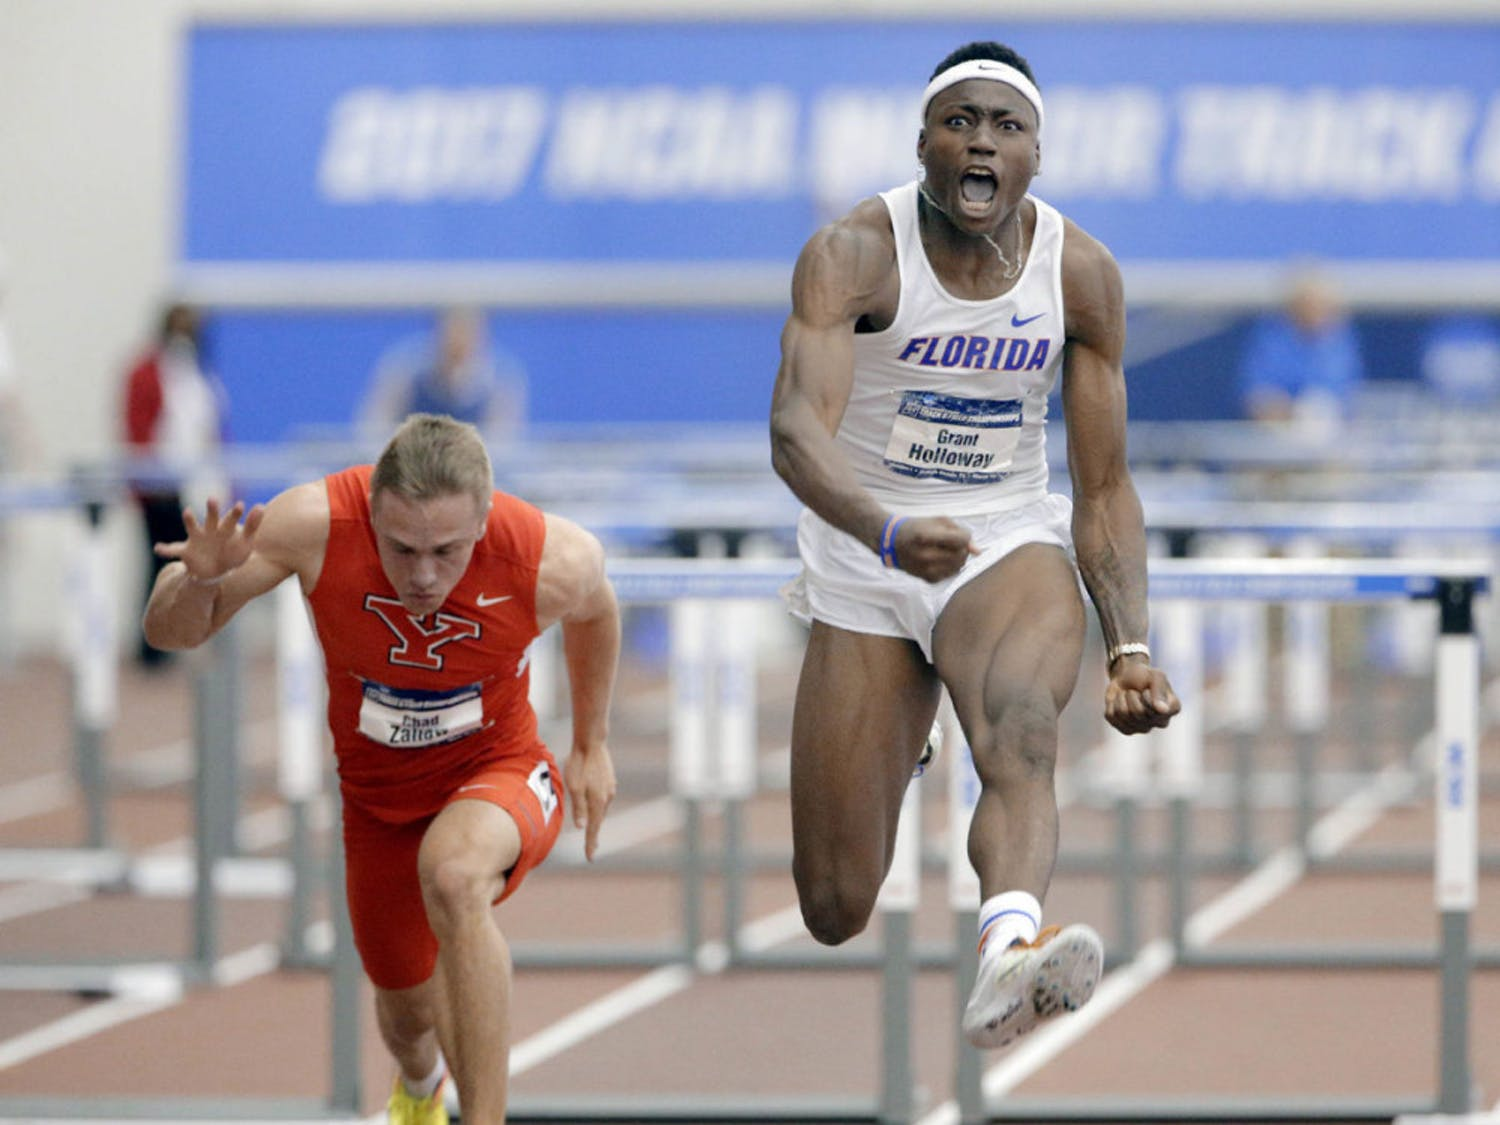 Florida sprinter/jumper/hurdler Grant Holloway clocked a time of 6.51 seconds in the 60 meters at the Razorback Invitational, which is good for the world lead. Holloway also holds the national lead in the 60-meter hurdles and the No. 2 marks in the long jump and 200 meters.